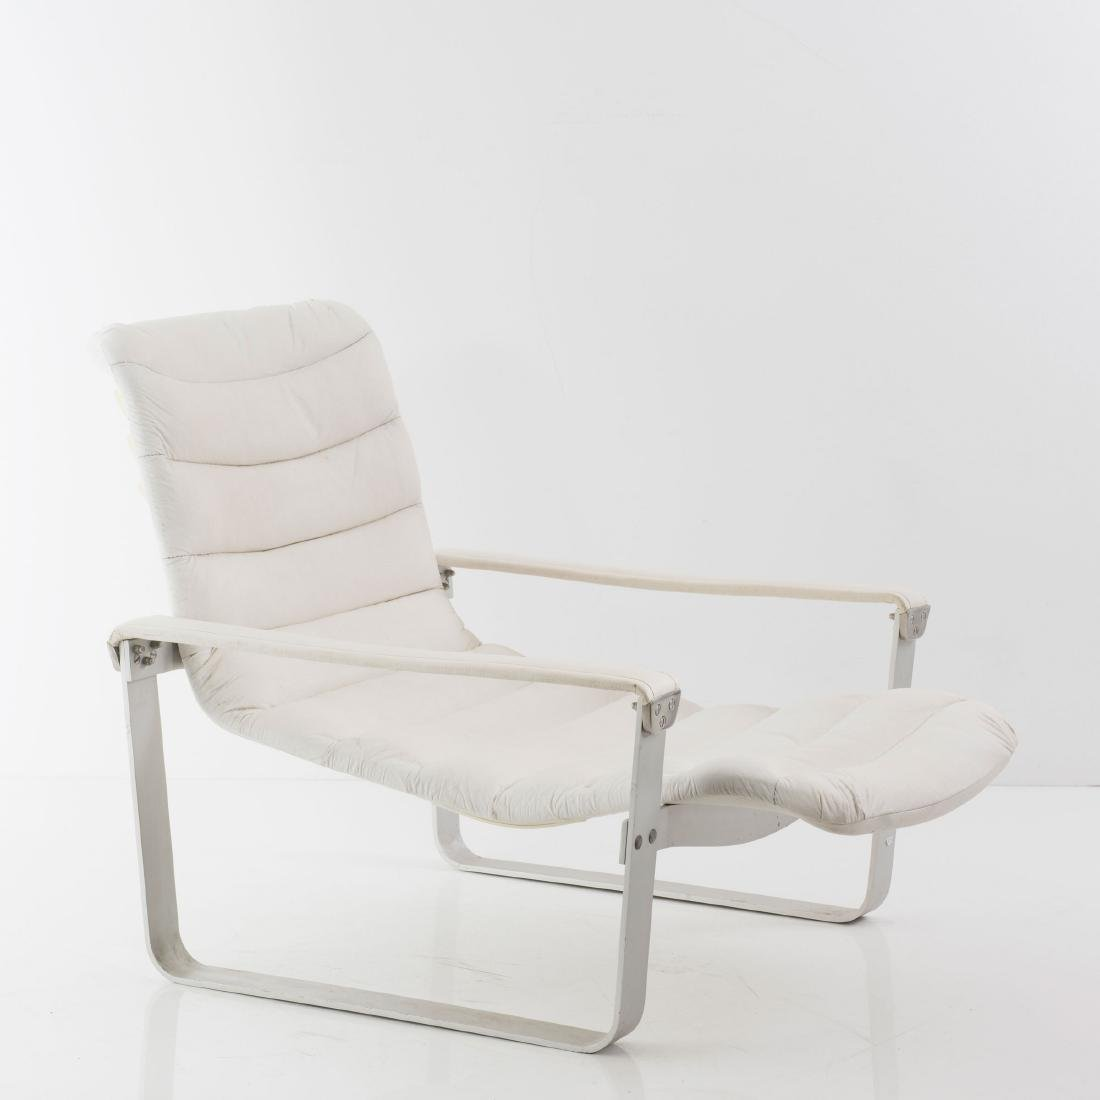 'Metal - pullka' easy chair with ottoman, 1968 - 5